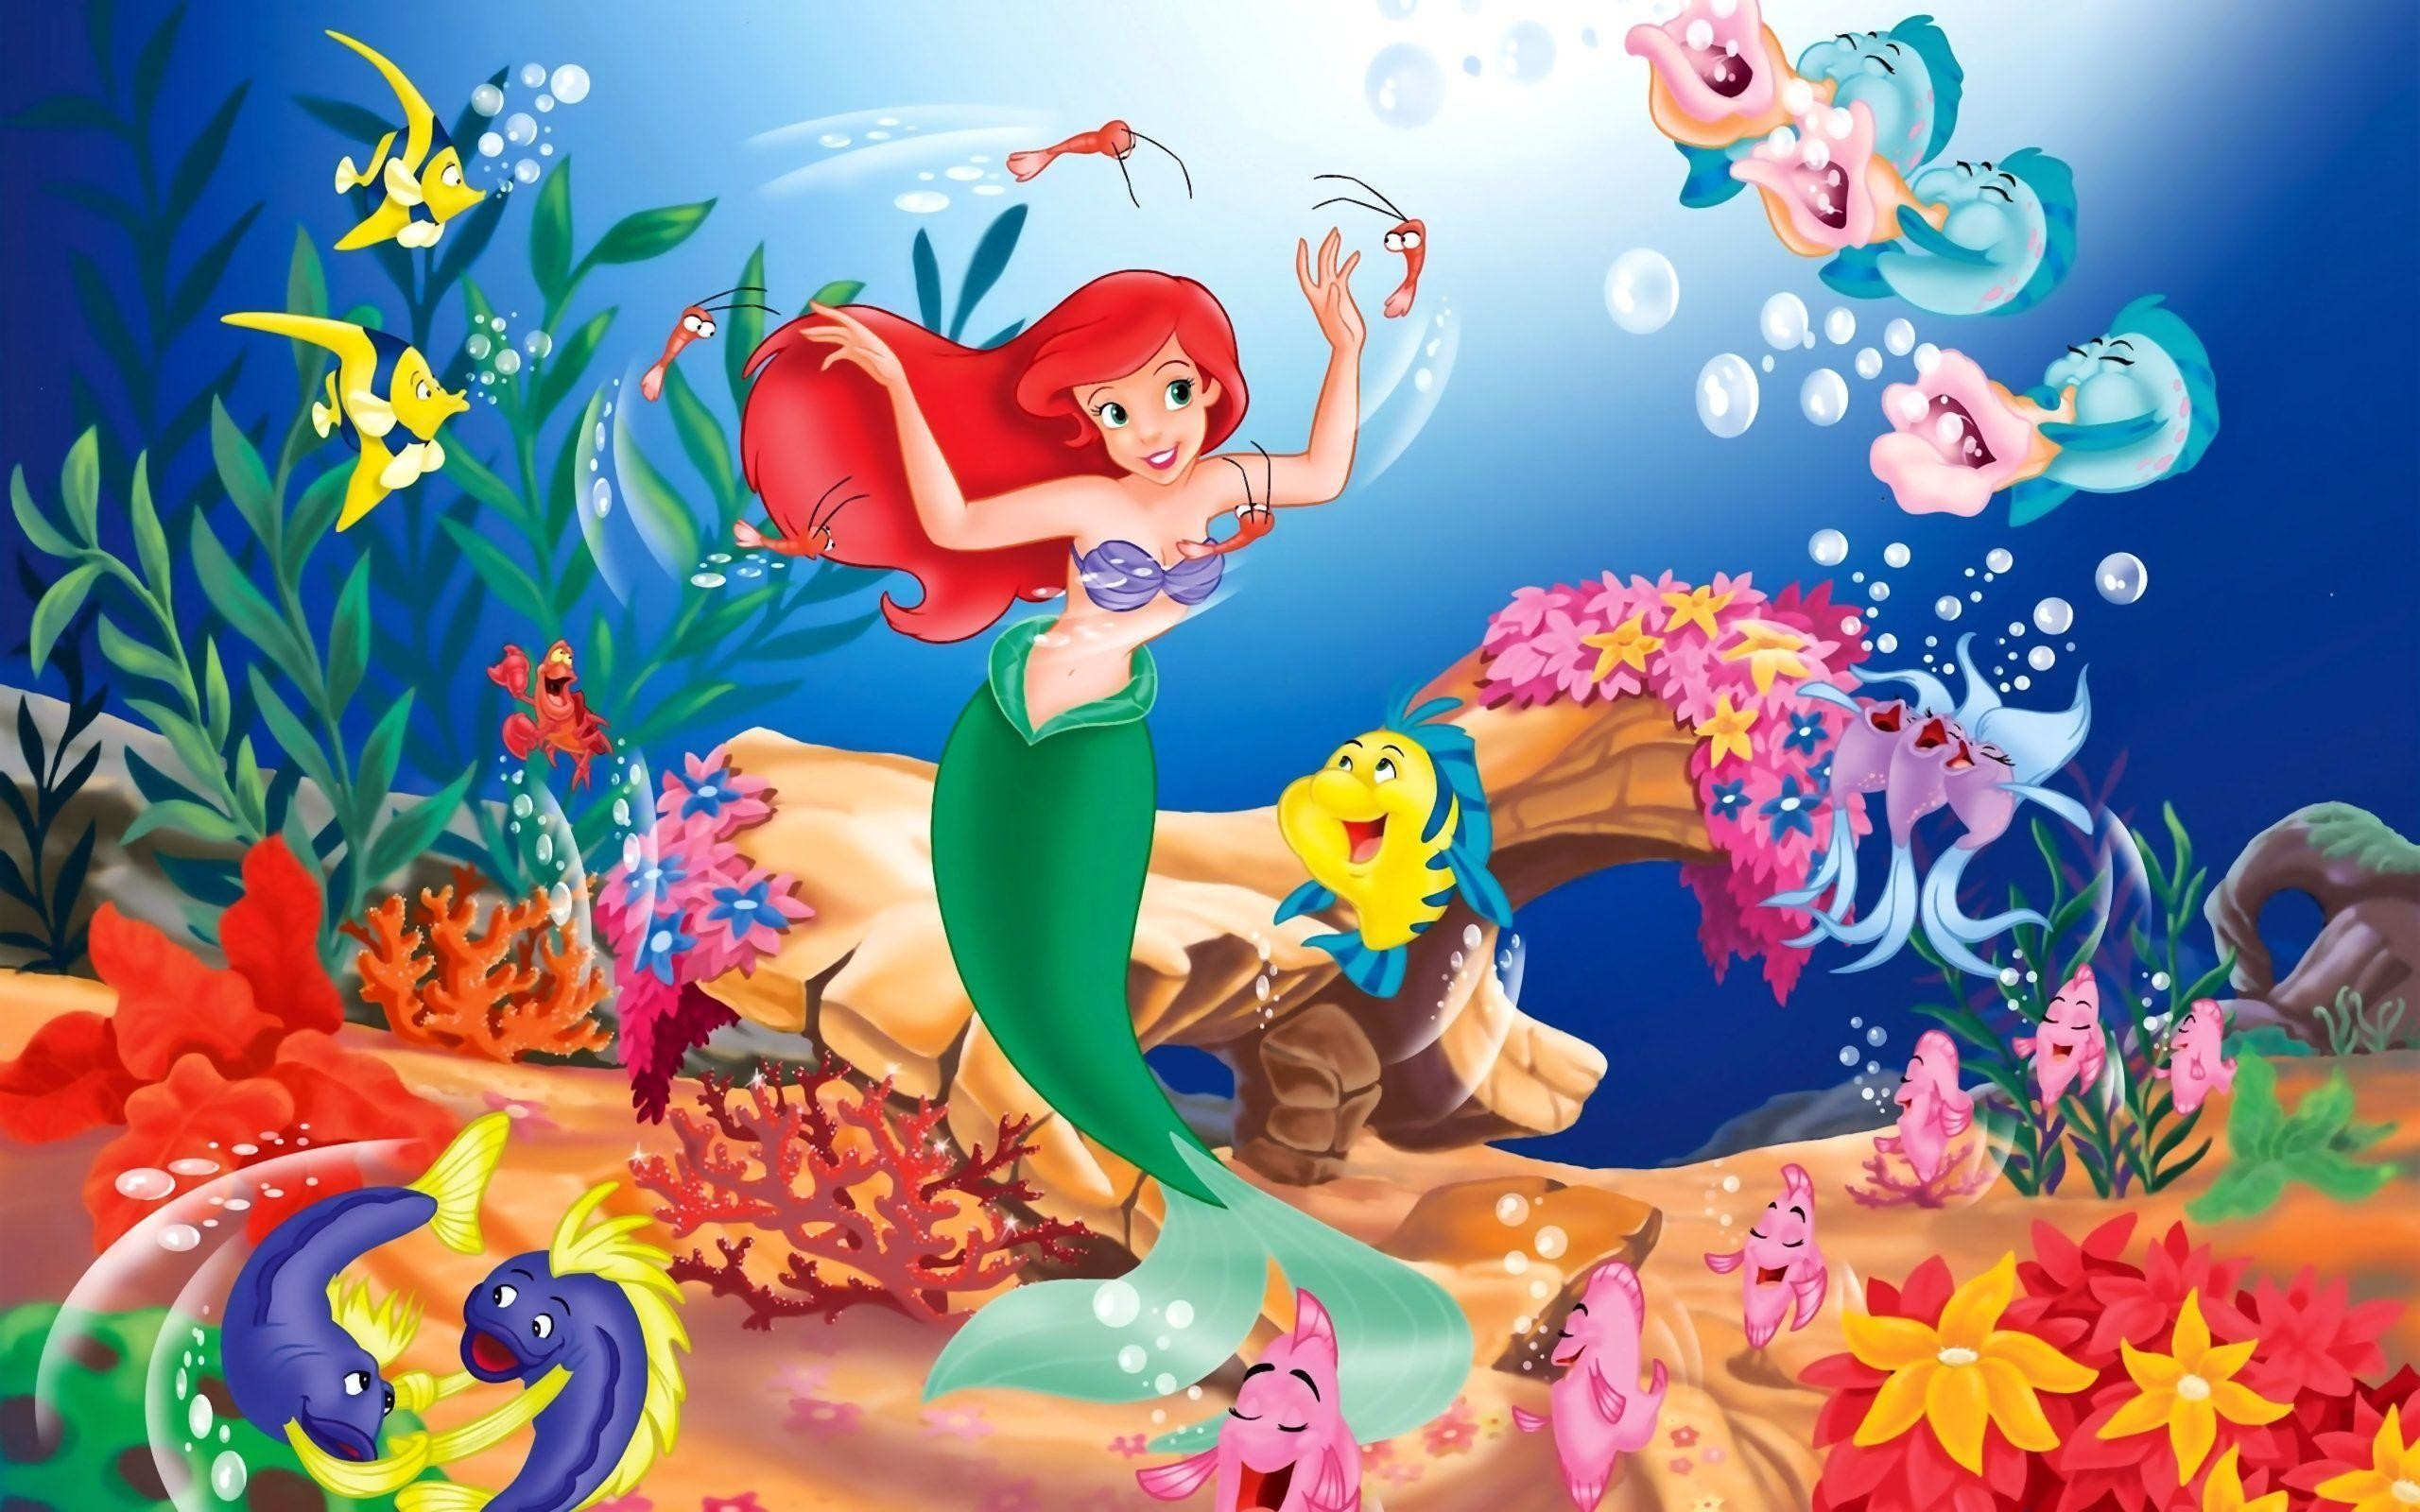 Res: 2560x1600, Wallpapers Tagged With DISNEY | DISNEY HD Wallpapers | Page 1